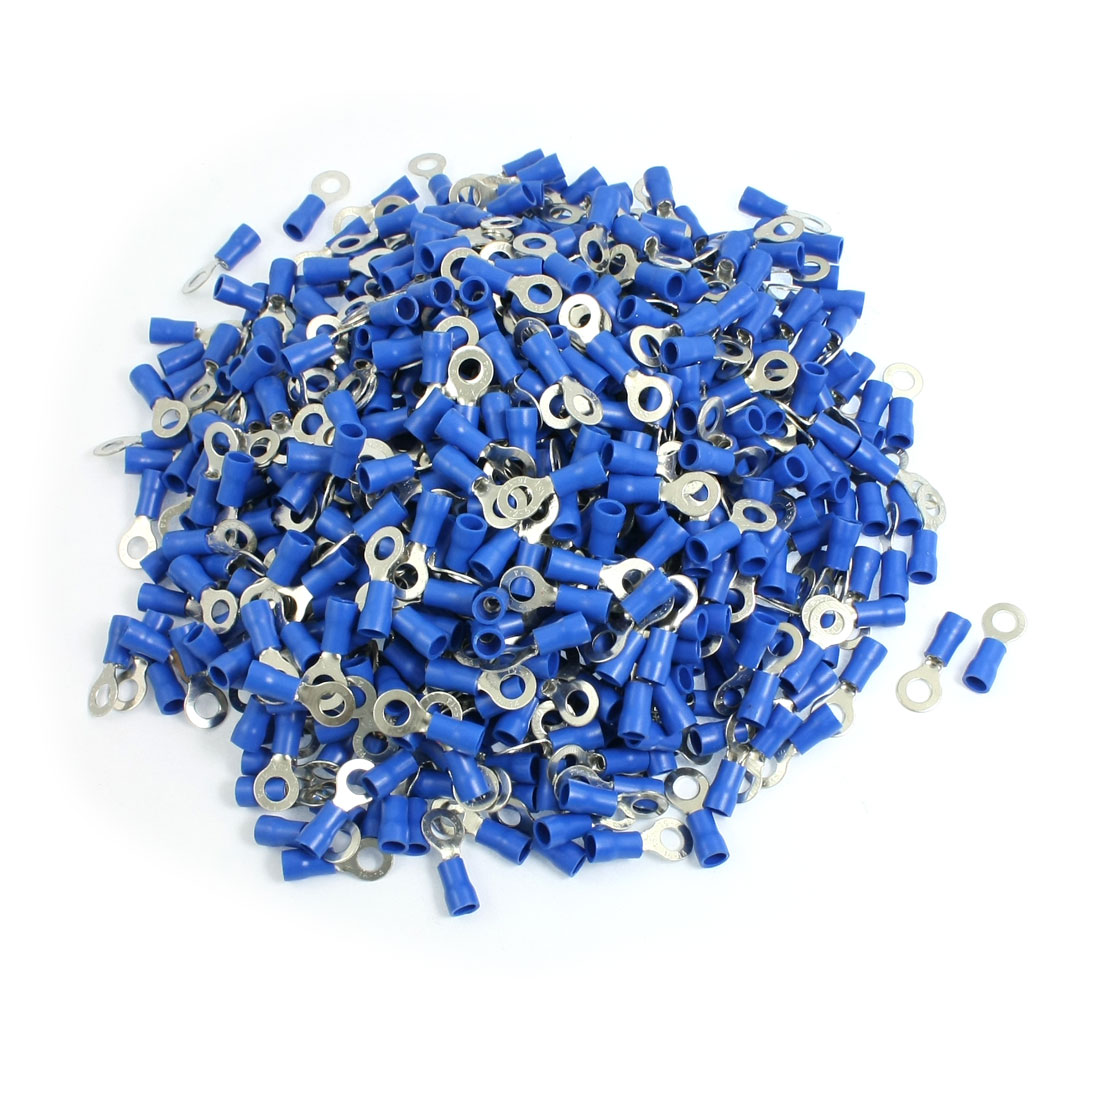 1000-x-Blue-PVC-Insulating-Sleeve-Ring-Terminals-Cable-Lug-RV2-5L-AWG-16-14